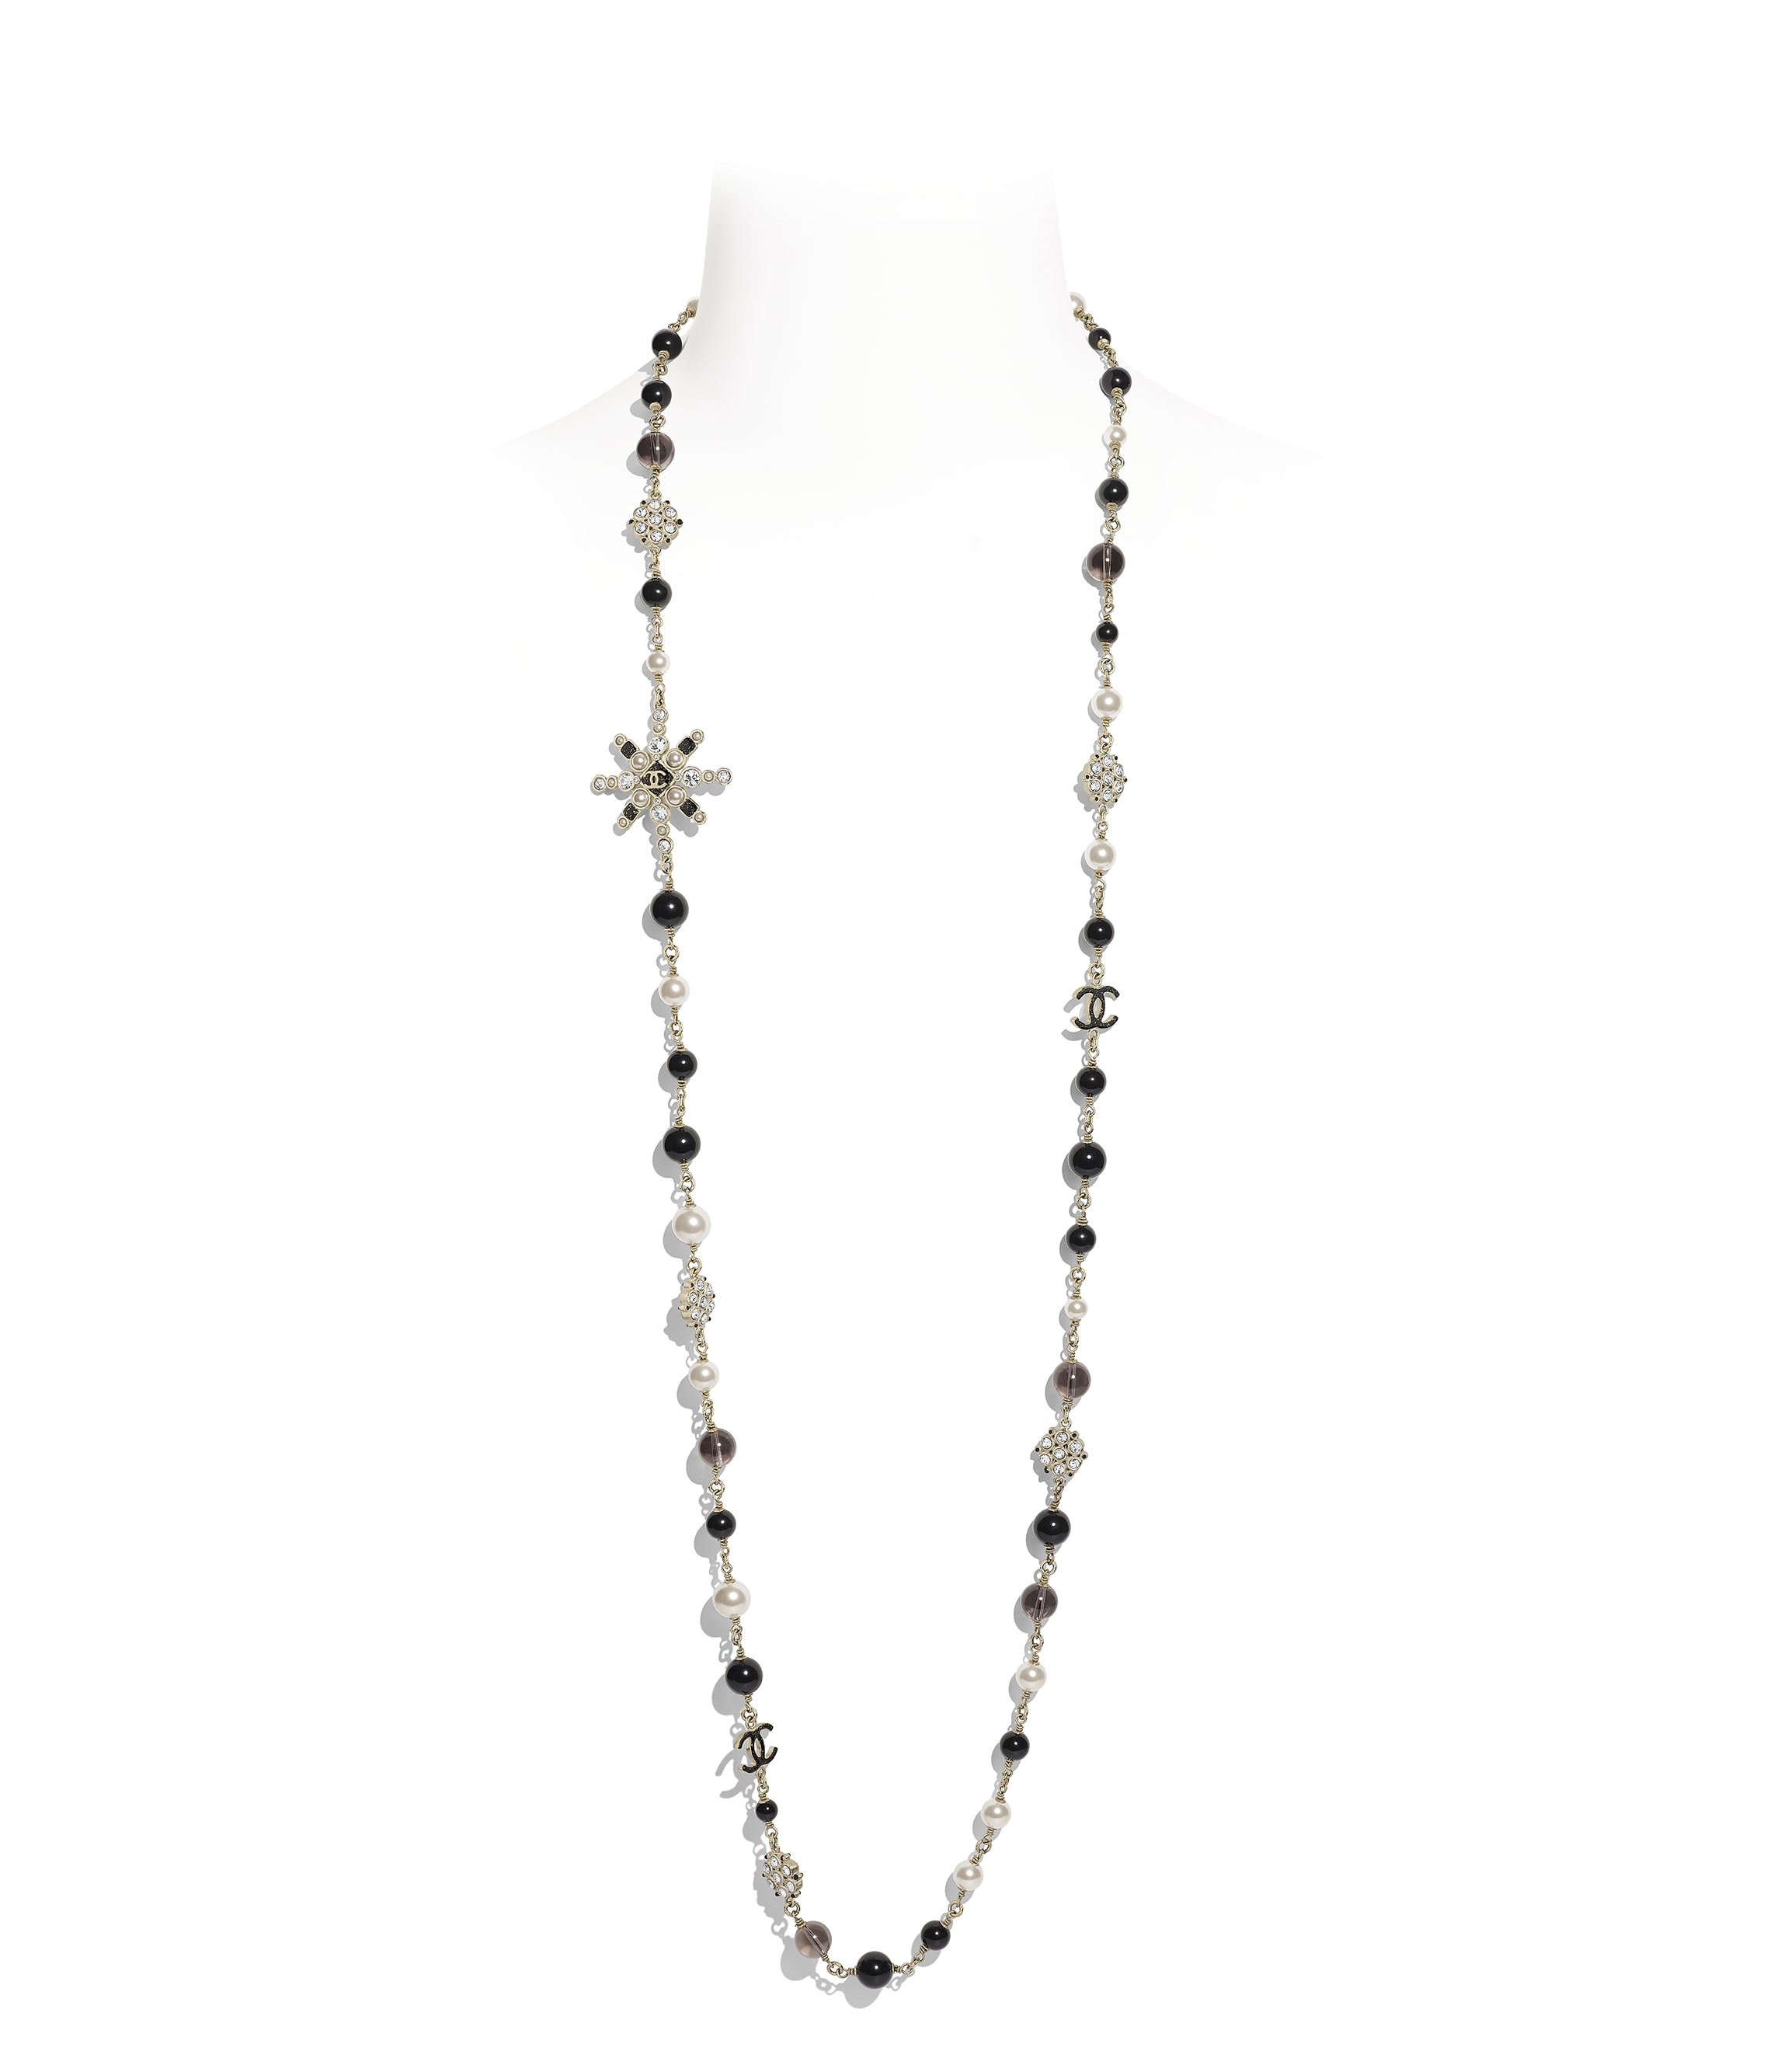 6a35ee1cc8 Necklaces - Costume Jewellery - CHANEL